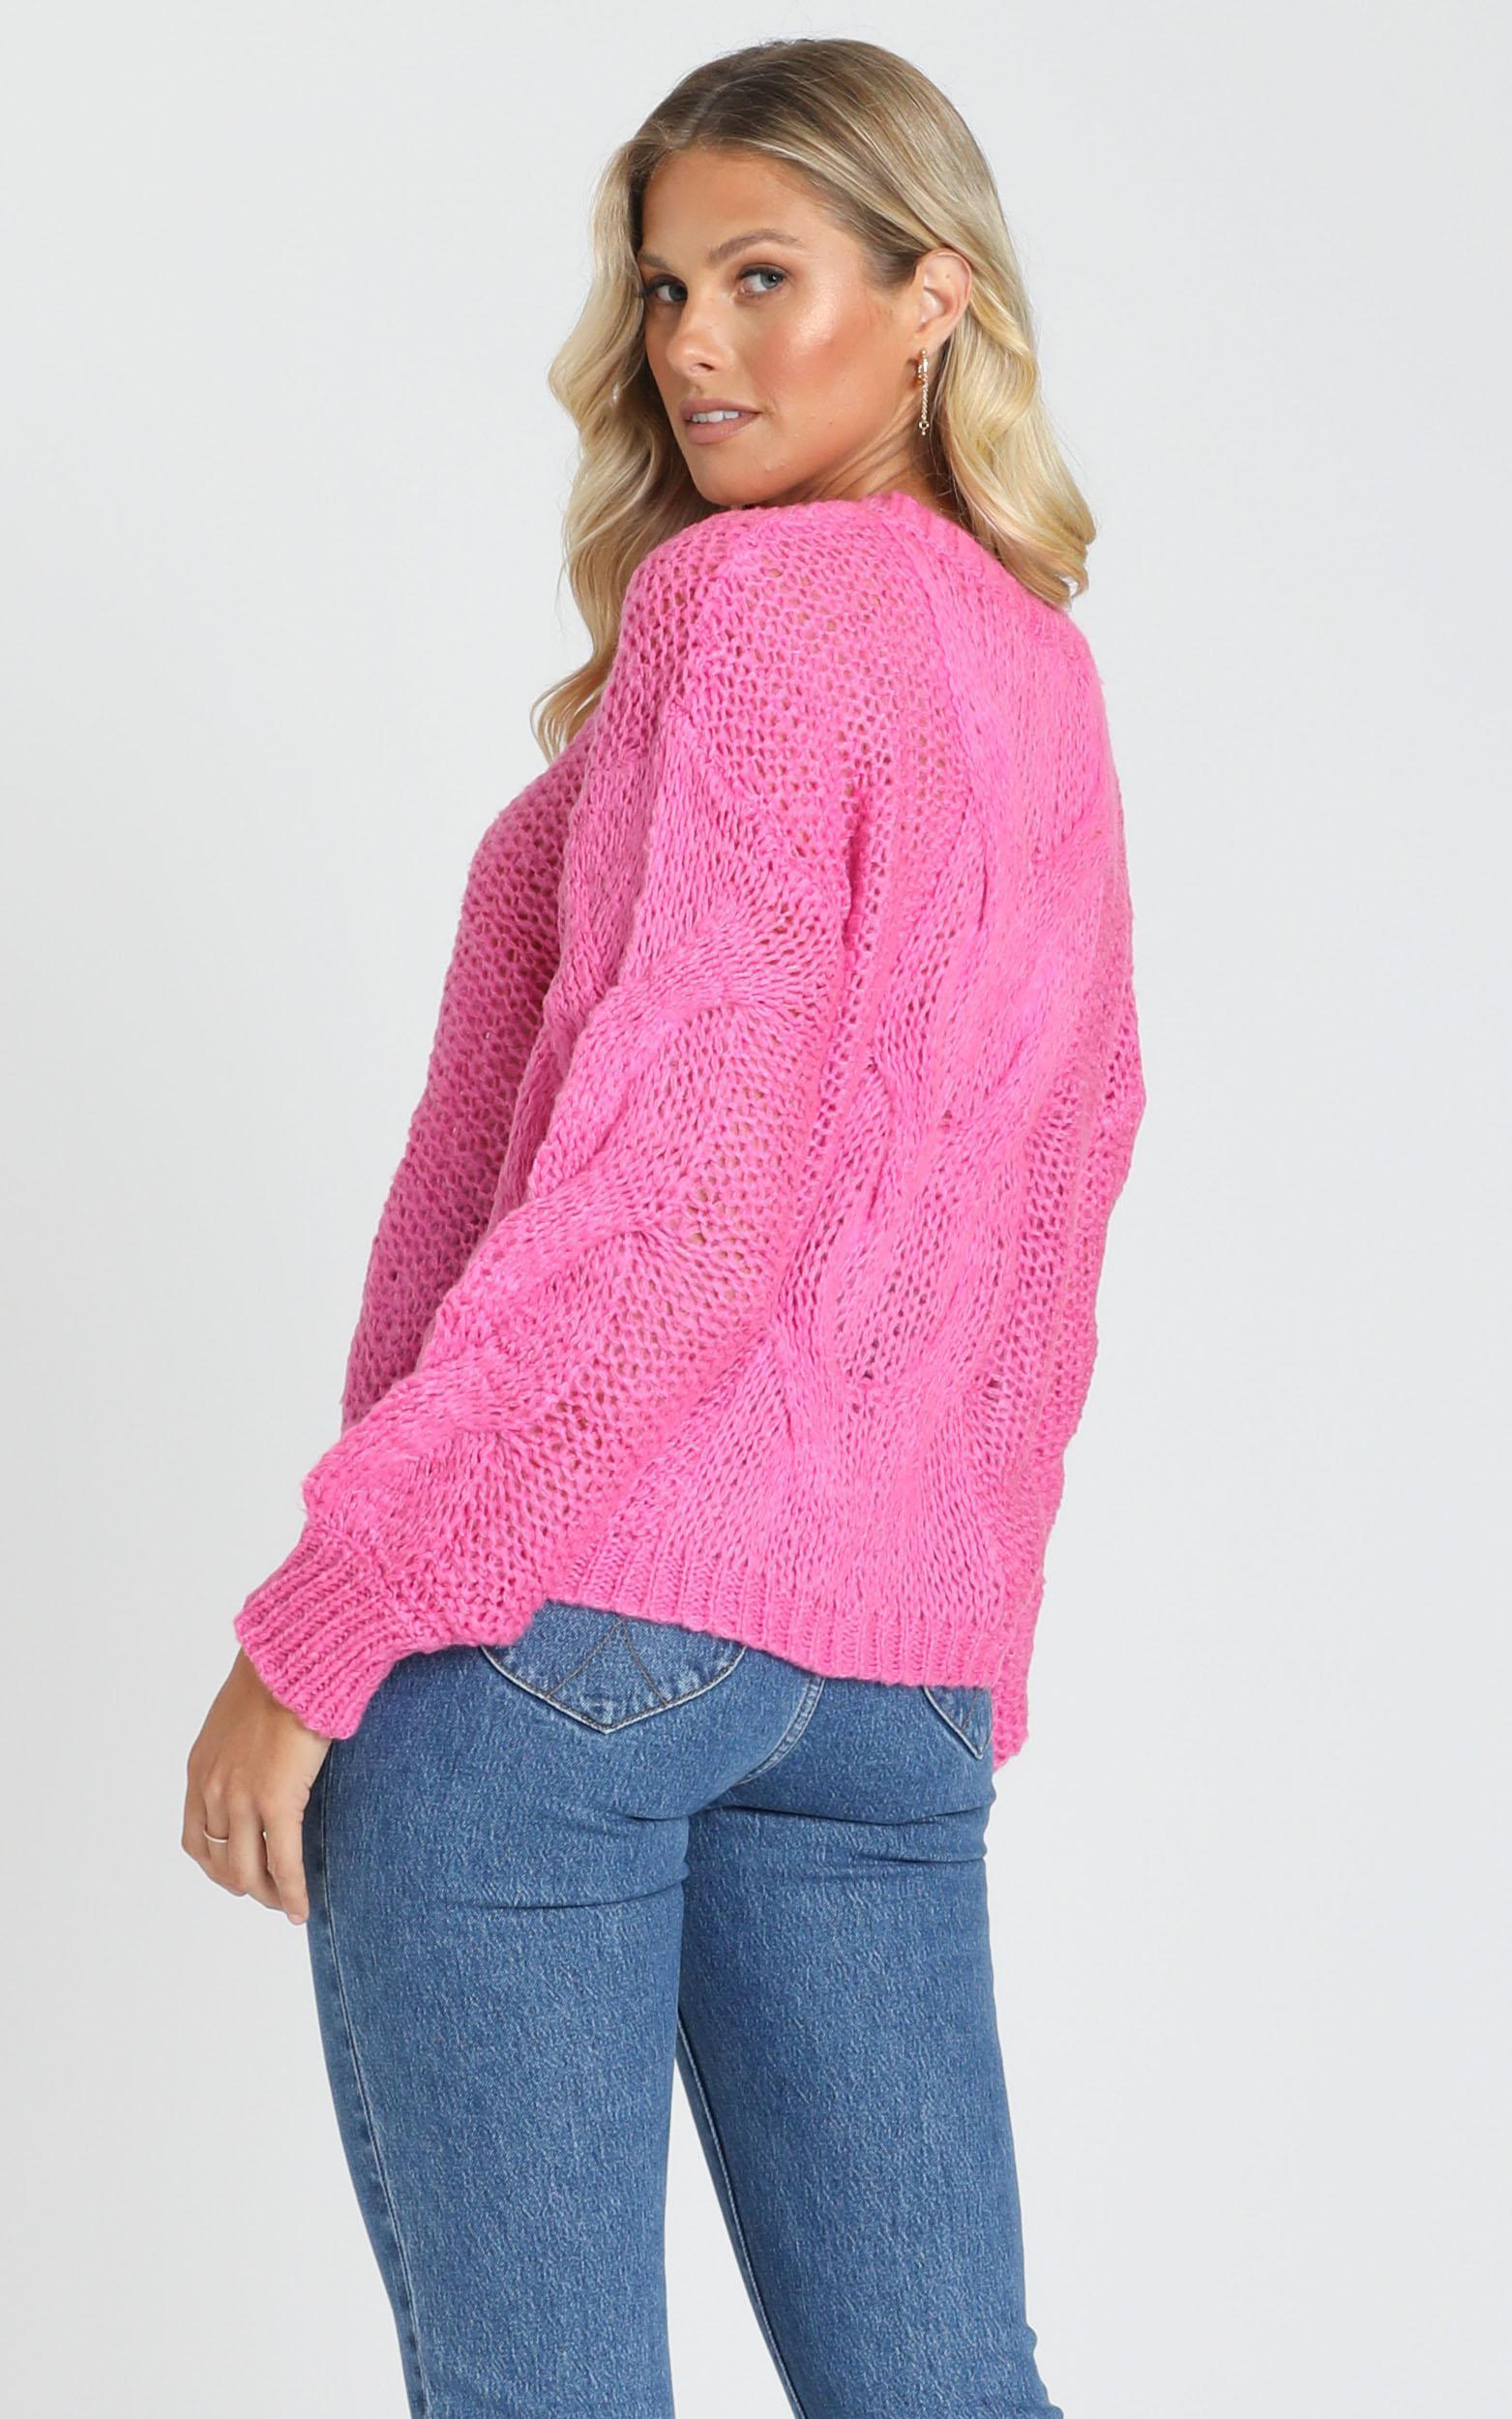 Jules Cable Knit Jumper in  Hot Pink - S/M, Pink, hi-res image number null